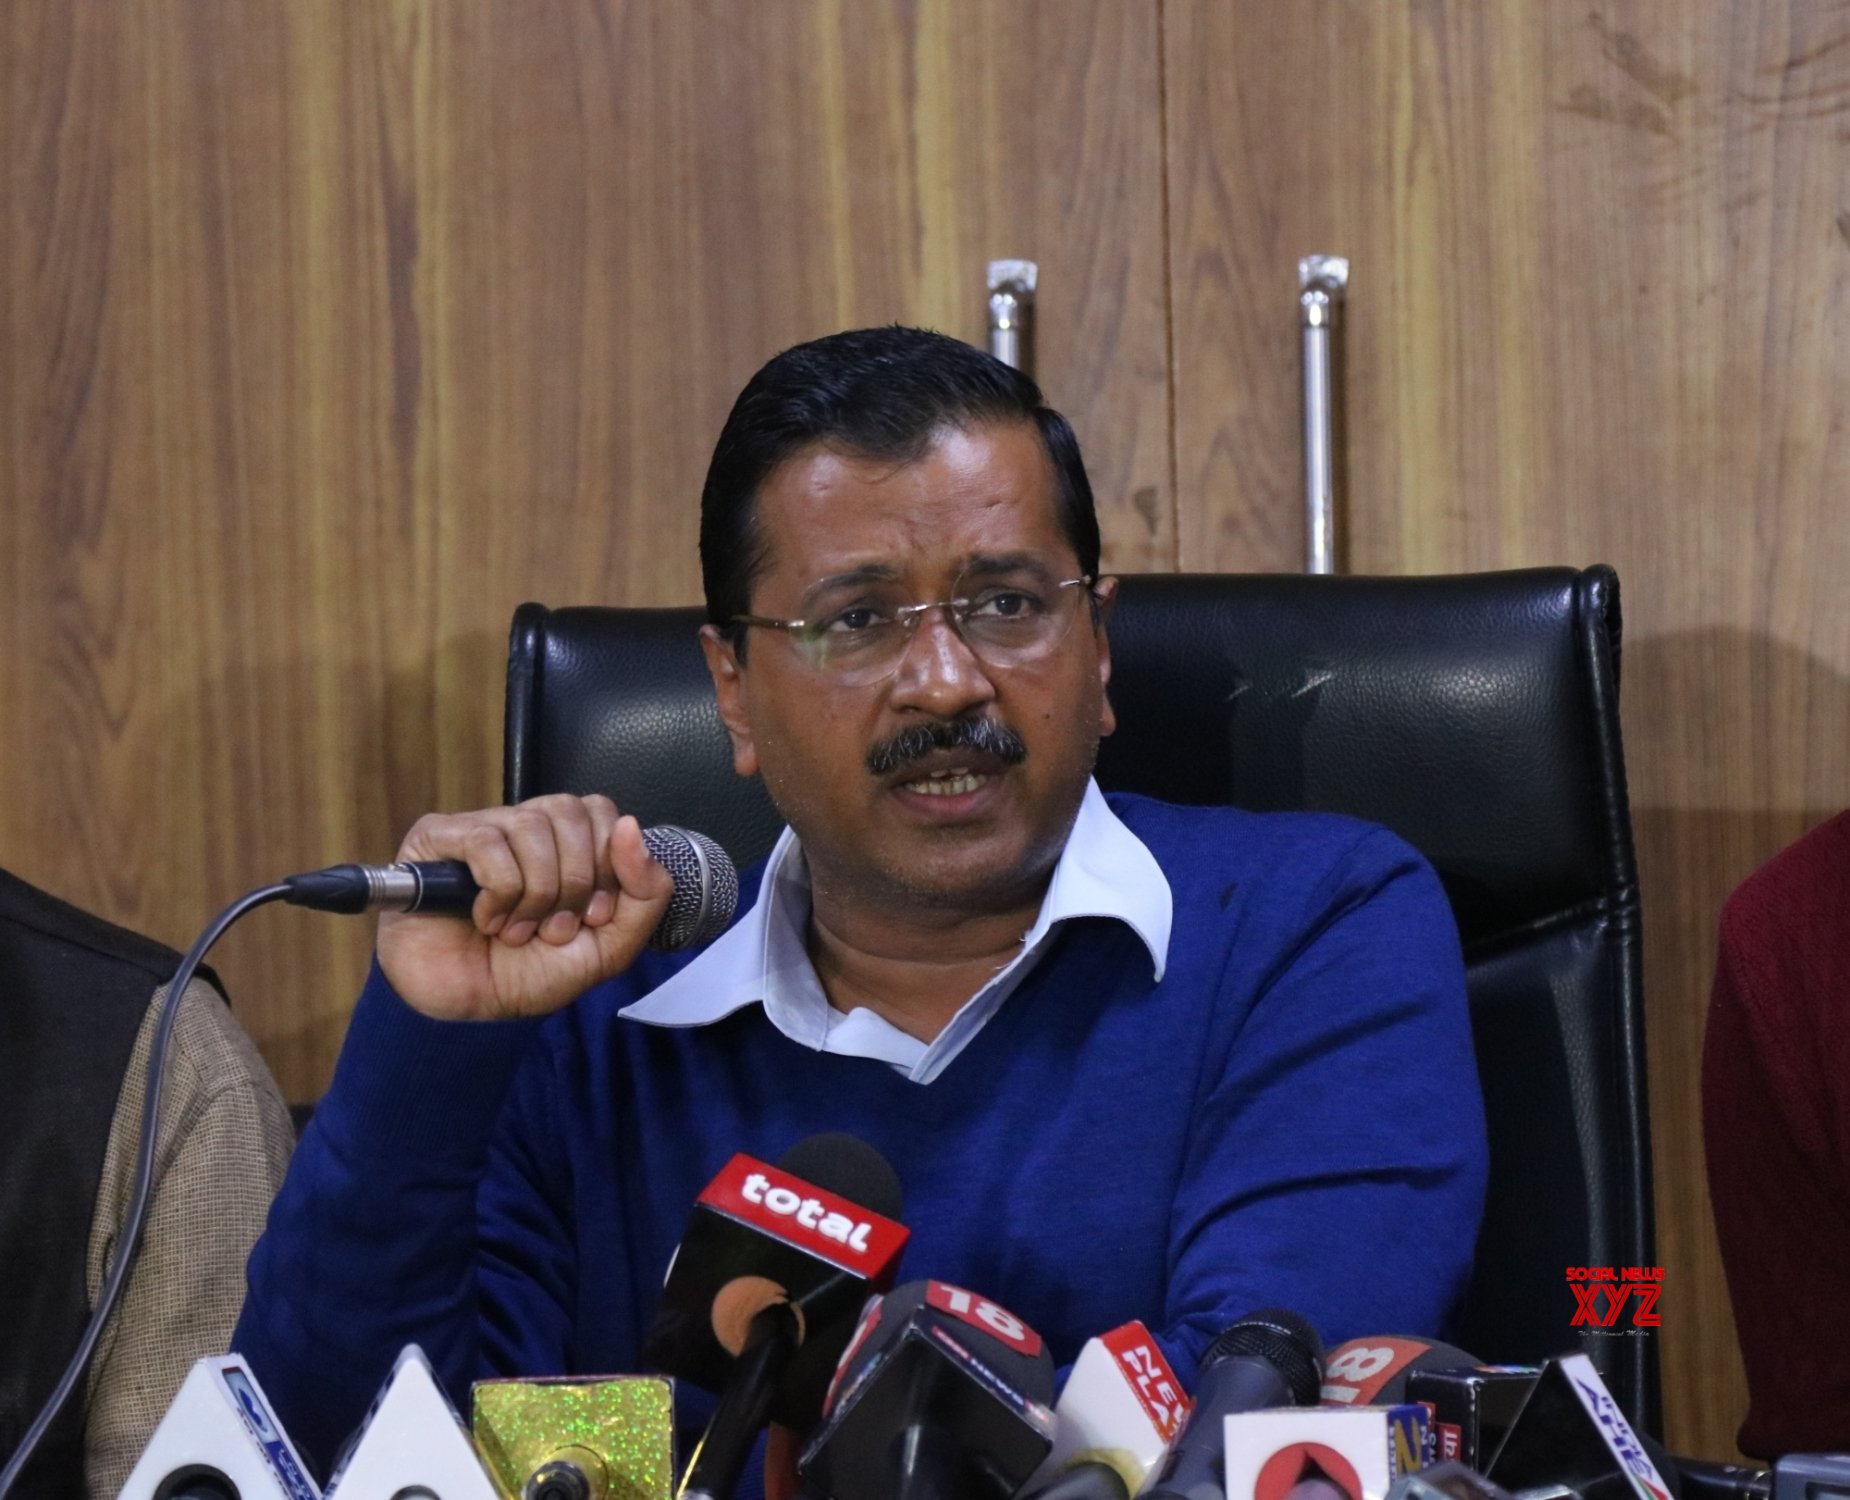 New Delhi: Arvind Kejriwal's press conference #Gallery